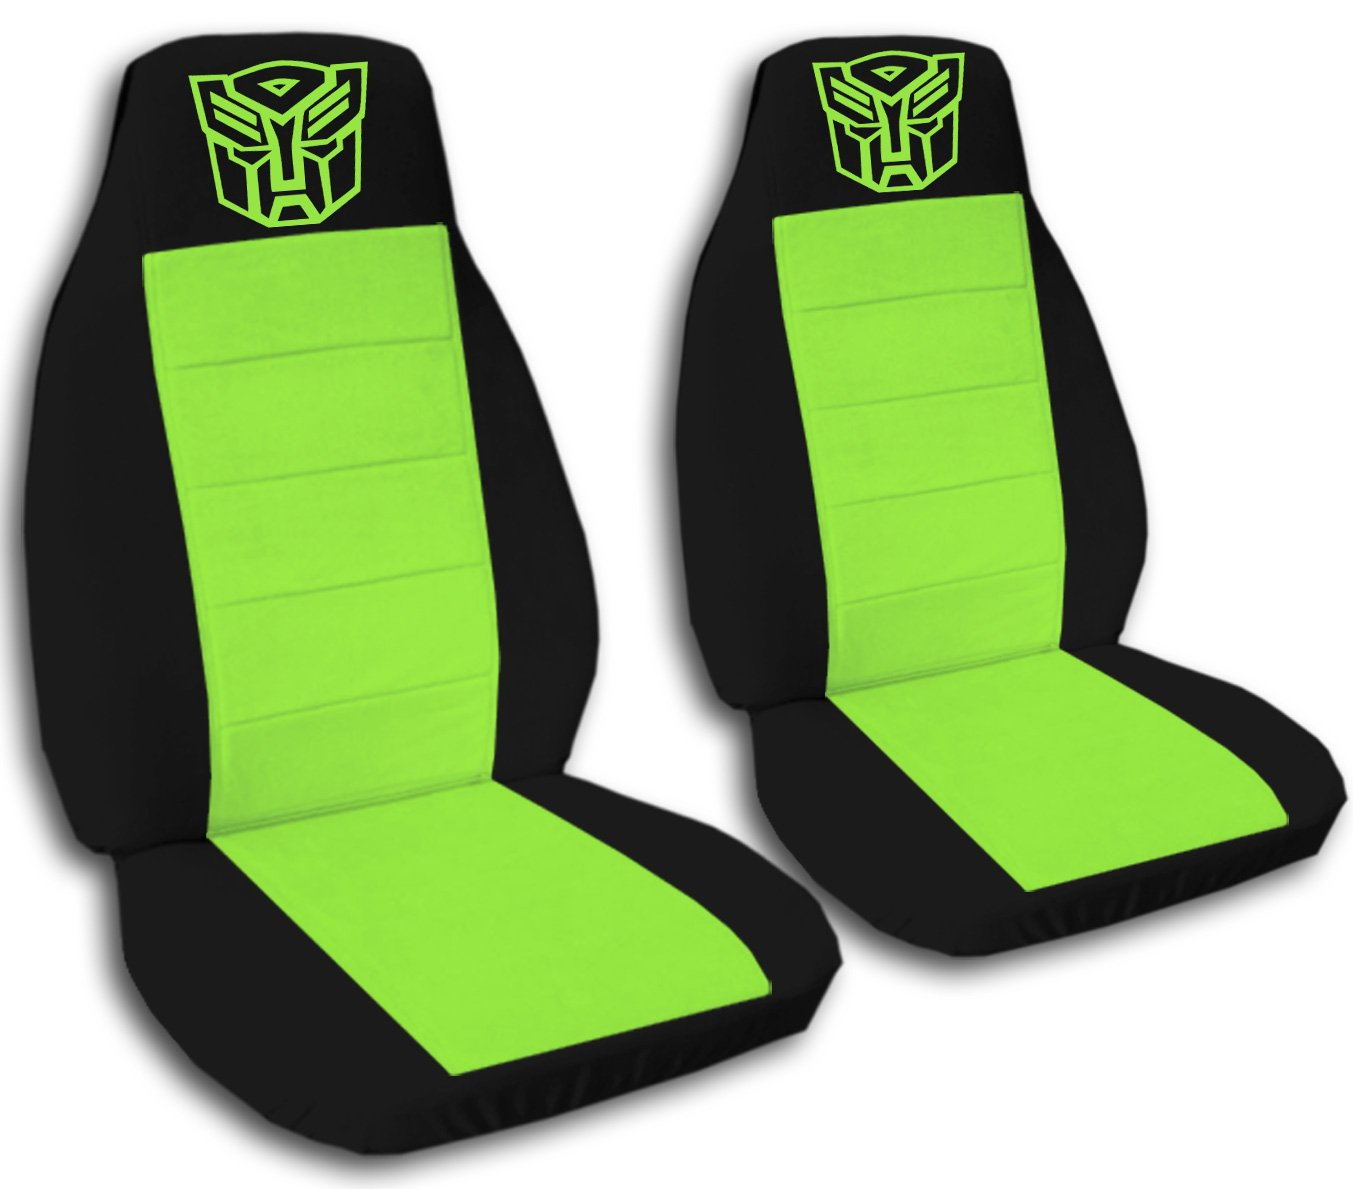 2 Black and Lime Green Robot seat covers for a 2005 to 2010 Jeep Grand Cherokee. крепление для жк дисплея ноутбука for hp pavilion hp pavilion dv9000 dv9200 dv9500 dv9700 17 3ja9hatp05 3ja9hatp06 432963 001 432964 001 l r